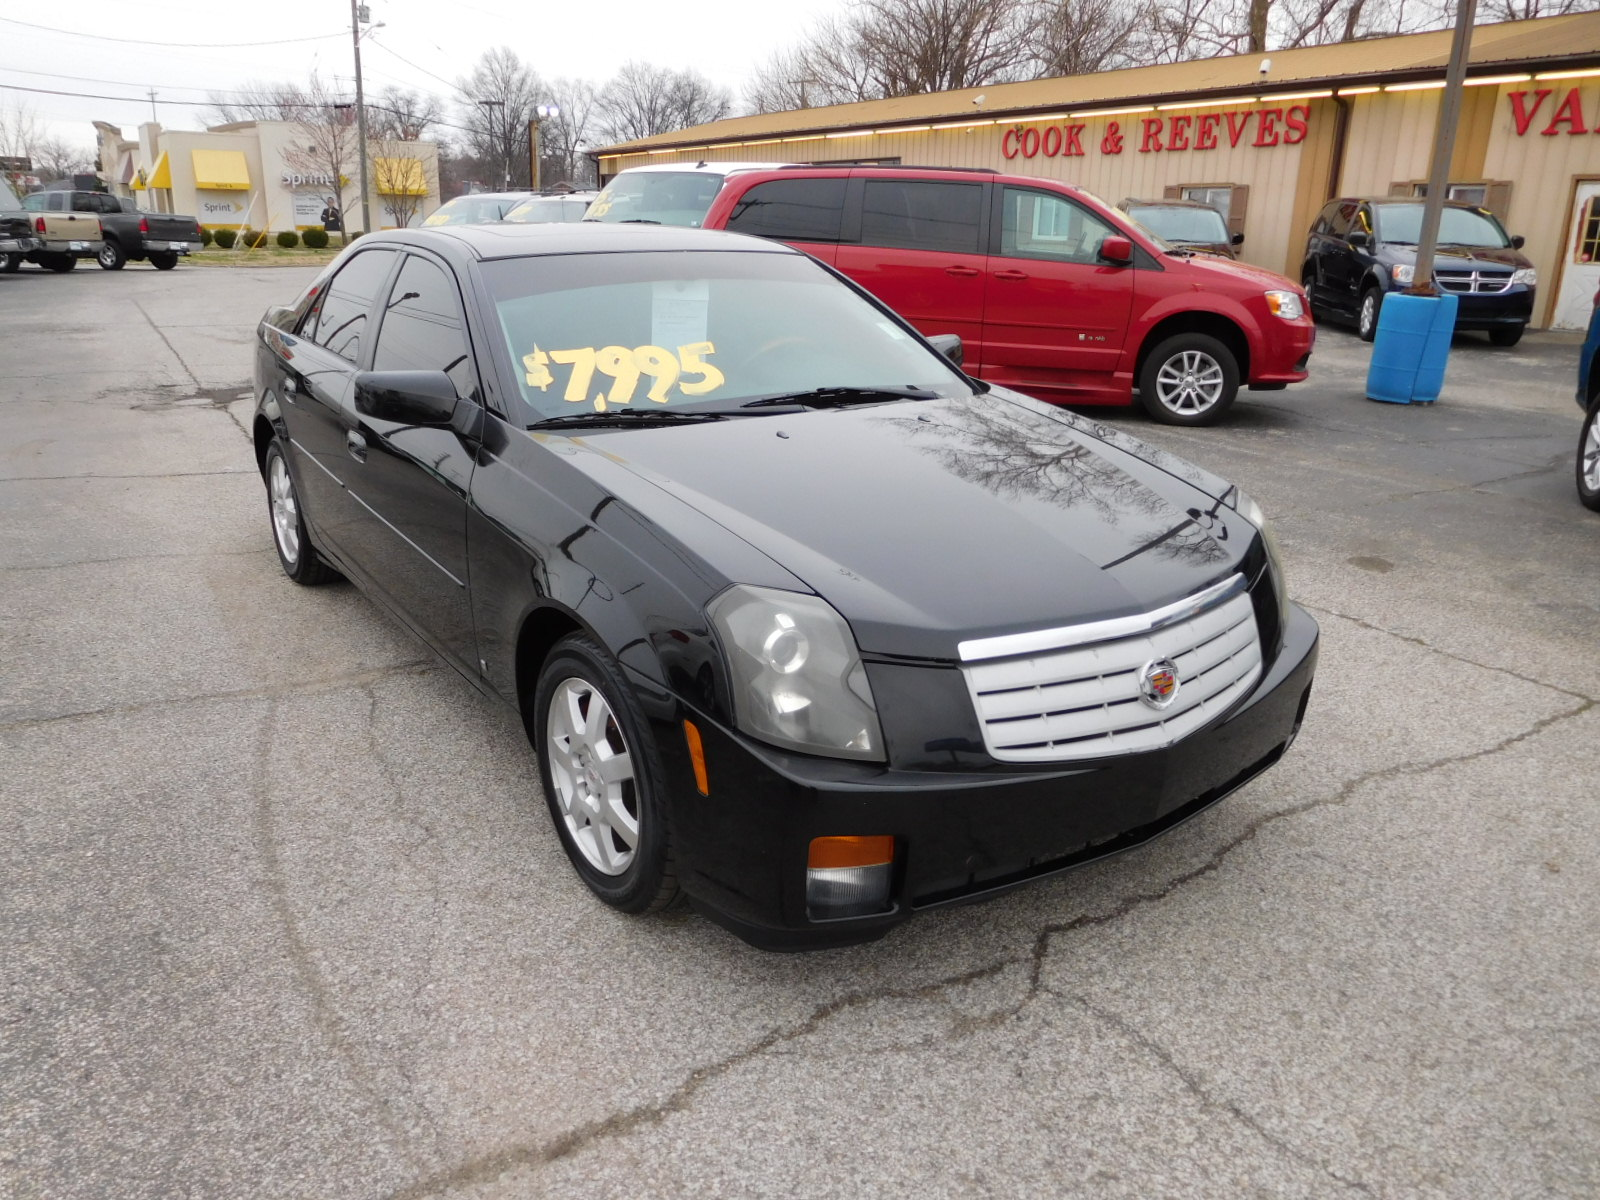 paid prices cts sale car generic price placeholder cadillac image new value used